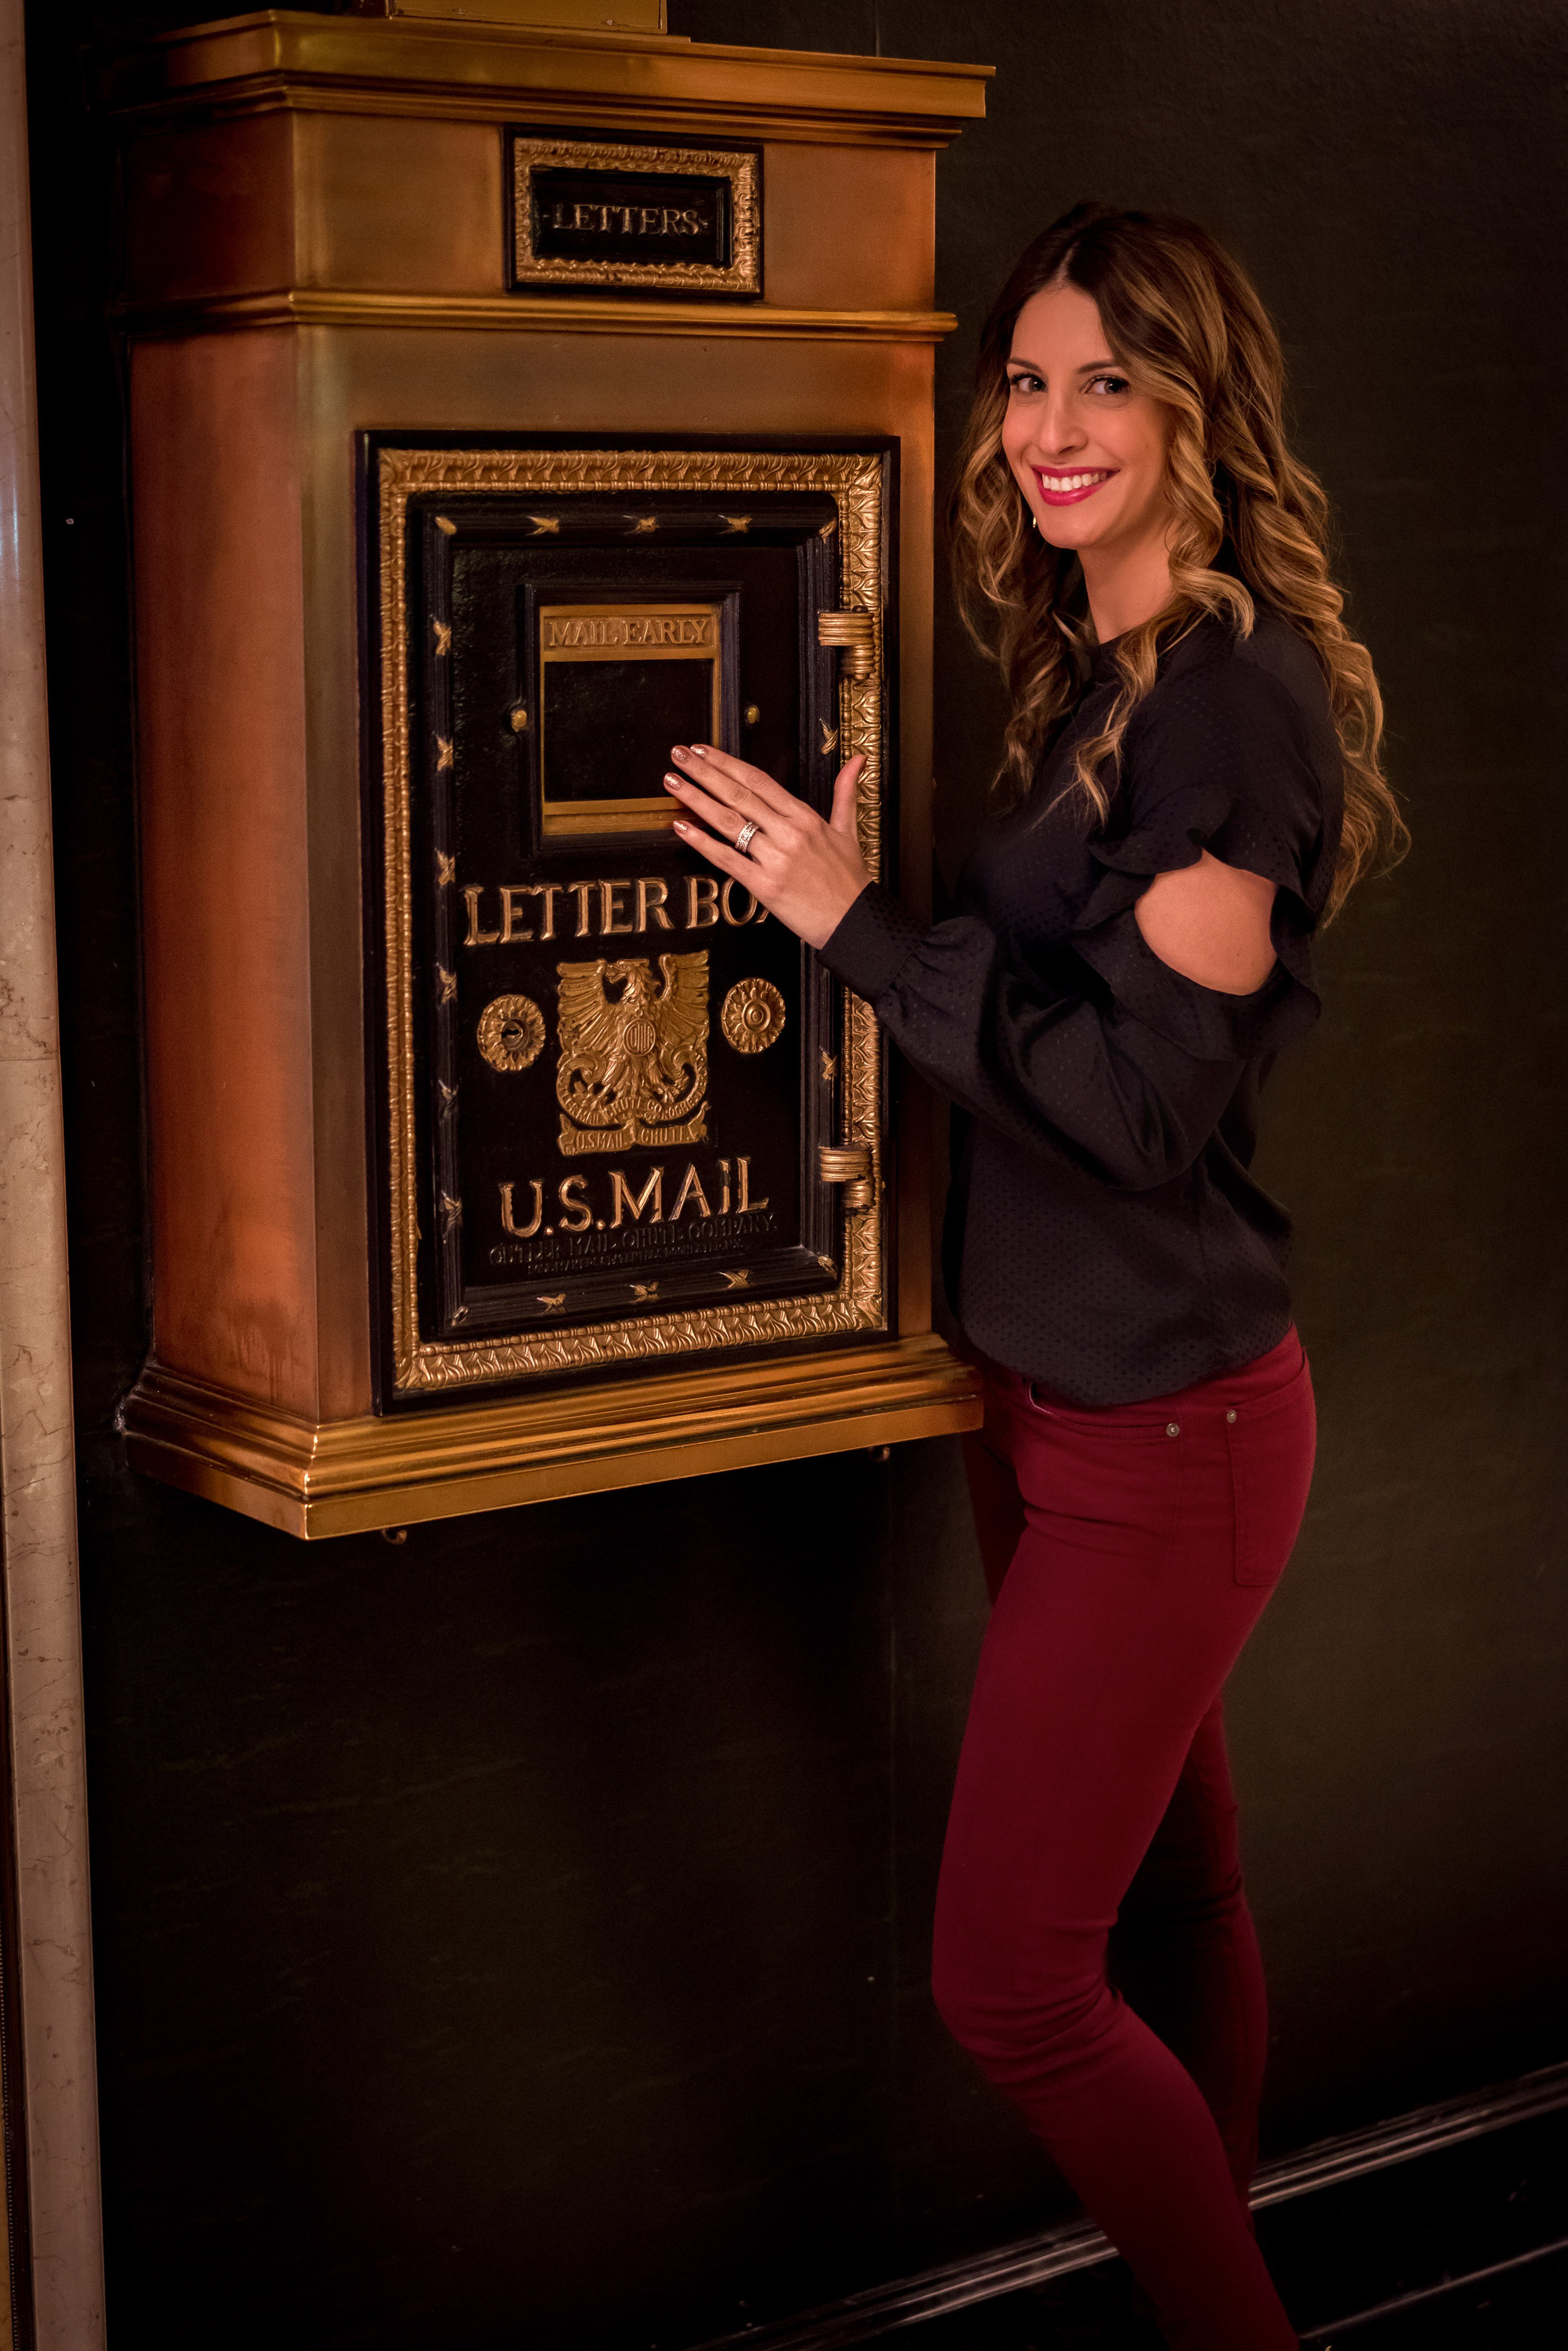 How fun is this old-fashioned mail box!?! Had to take a photo with it of course!